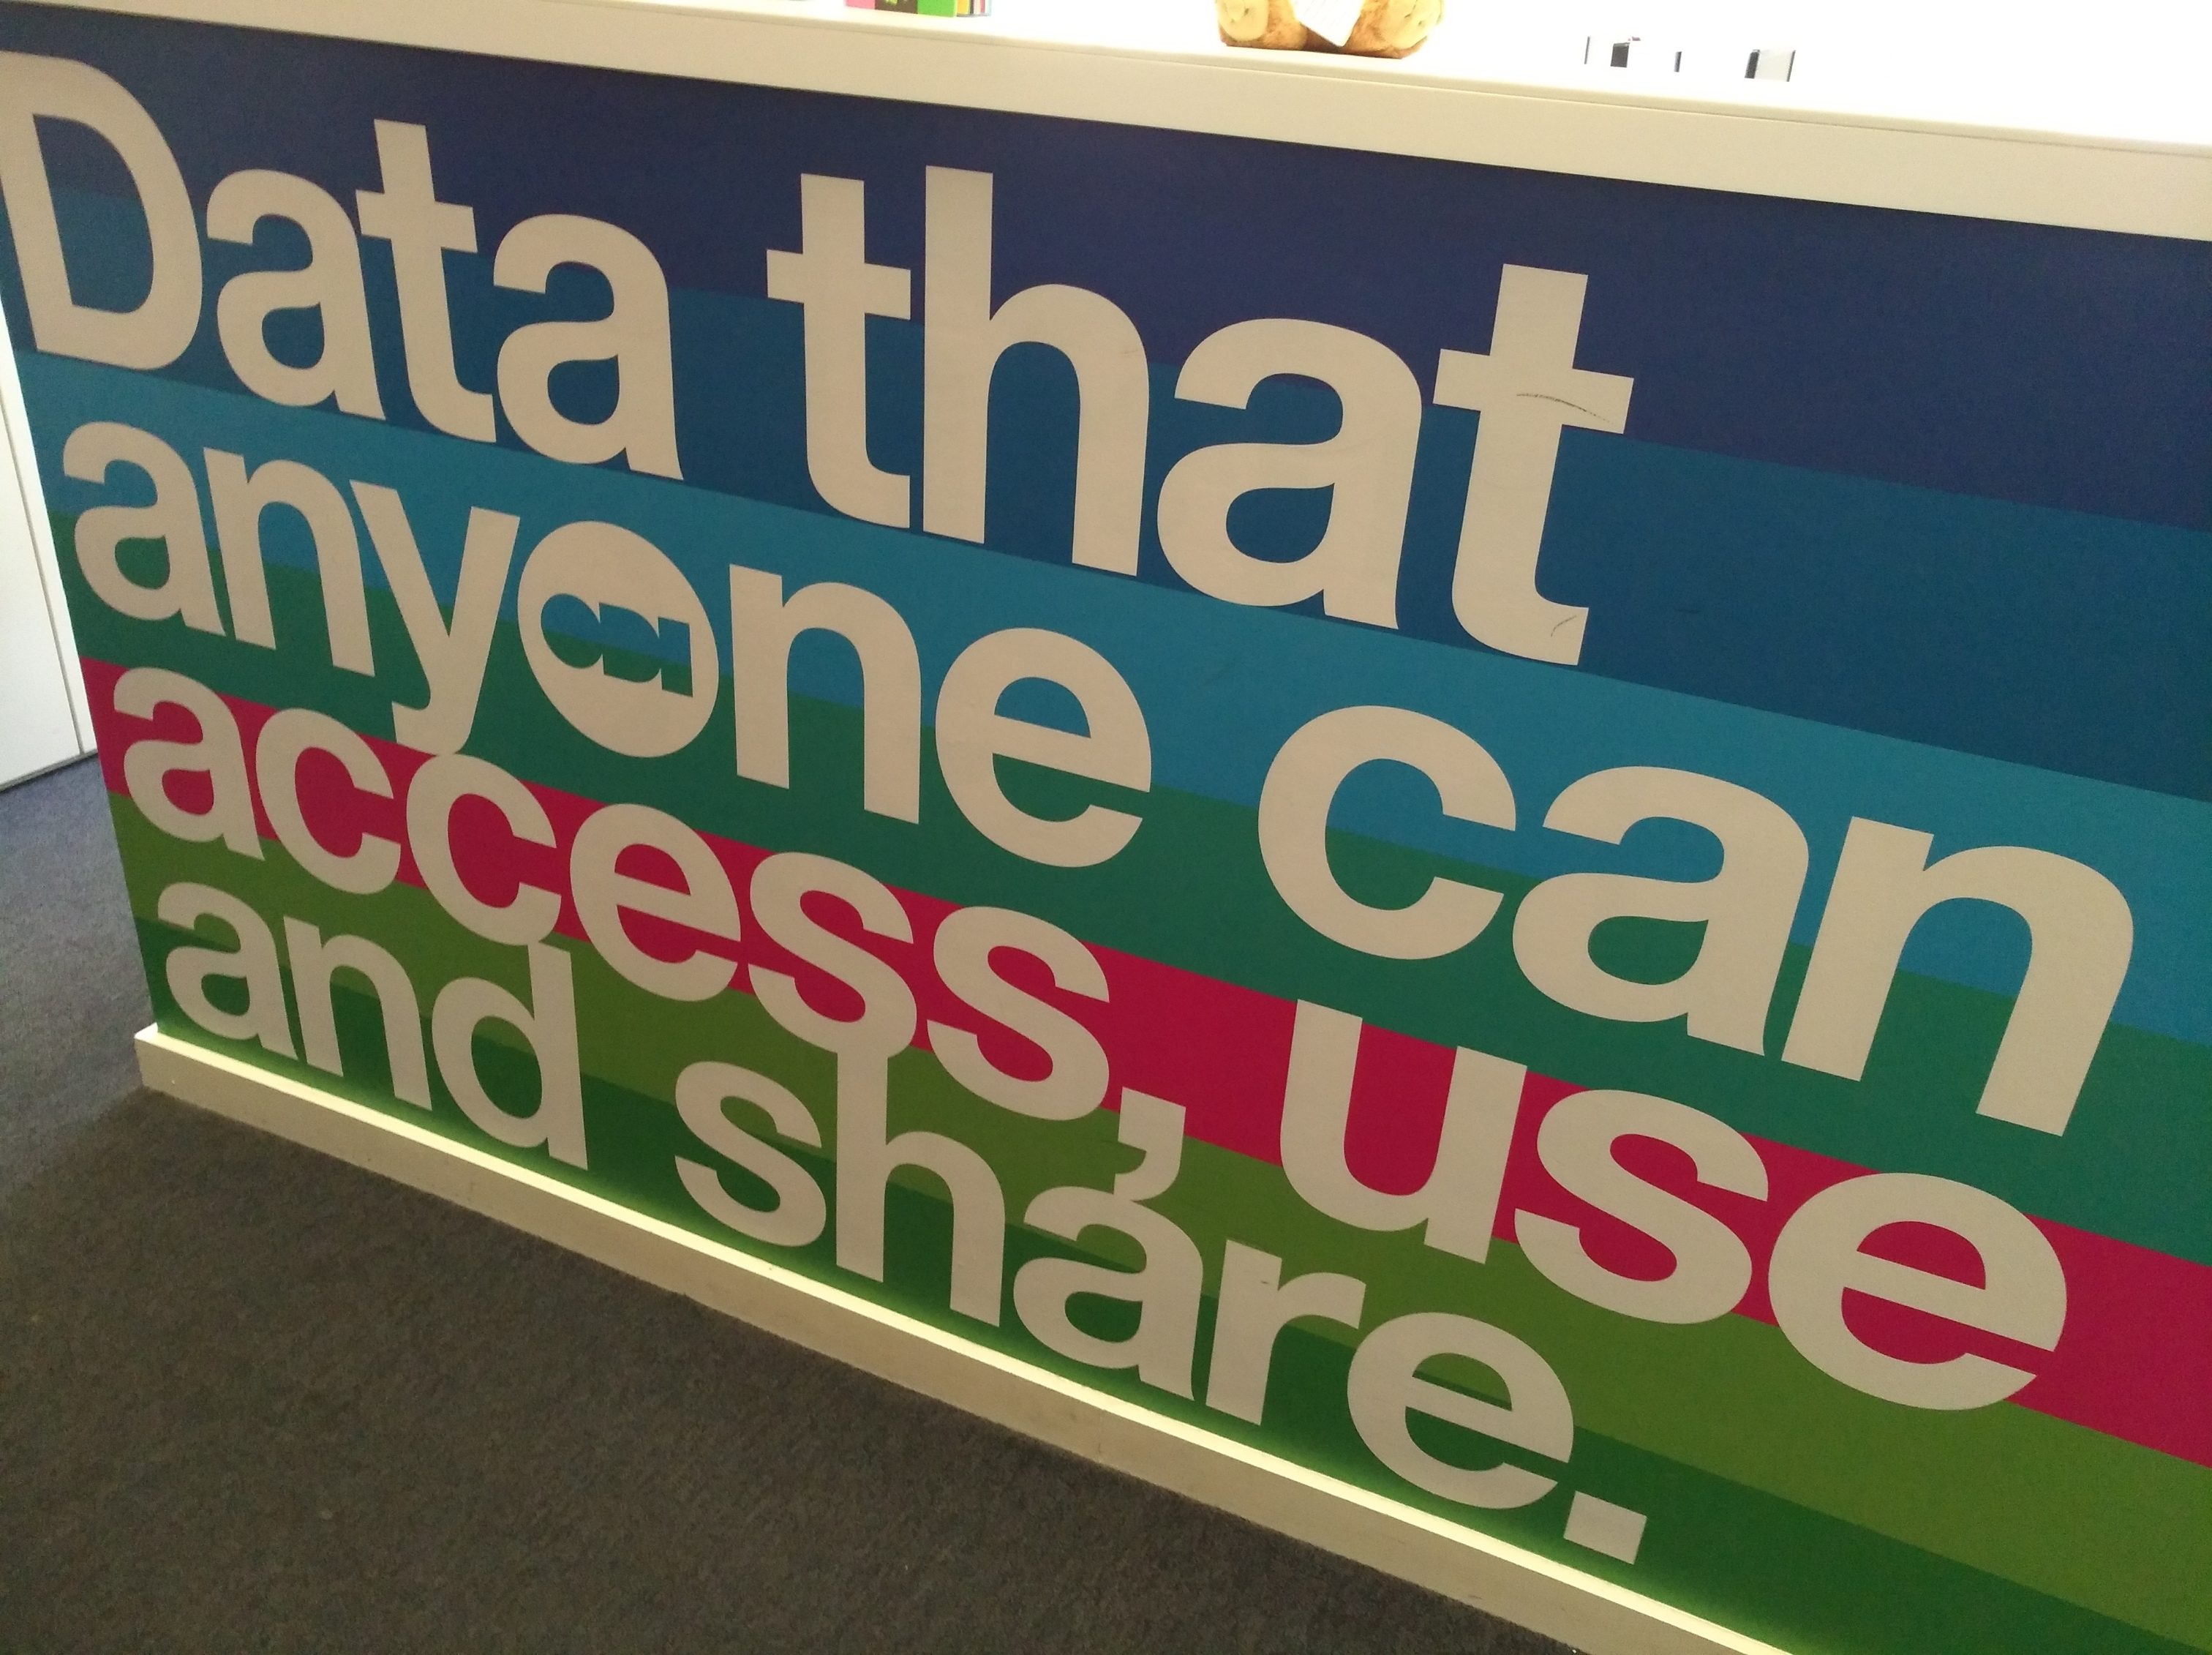 Empfangstresen im eingangsbereich. Darauf steht: Data that anyone can access, use and share.